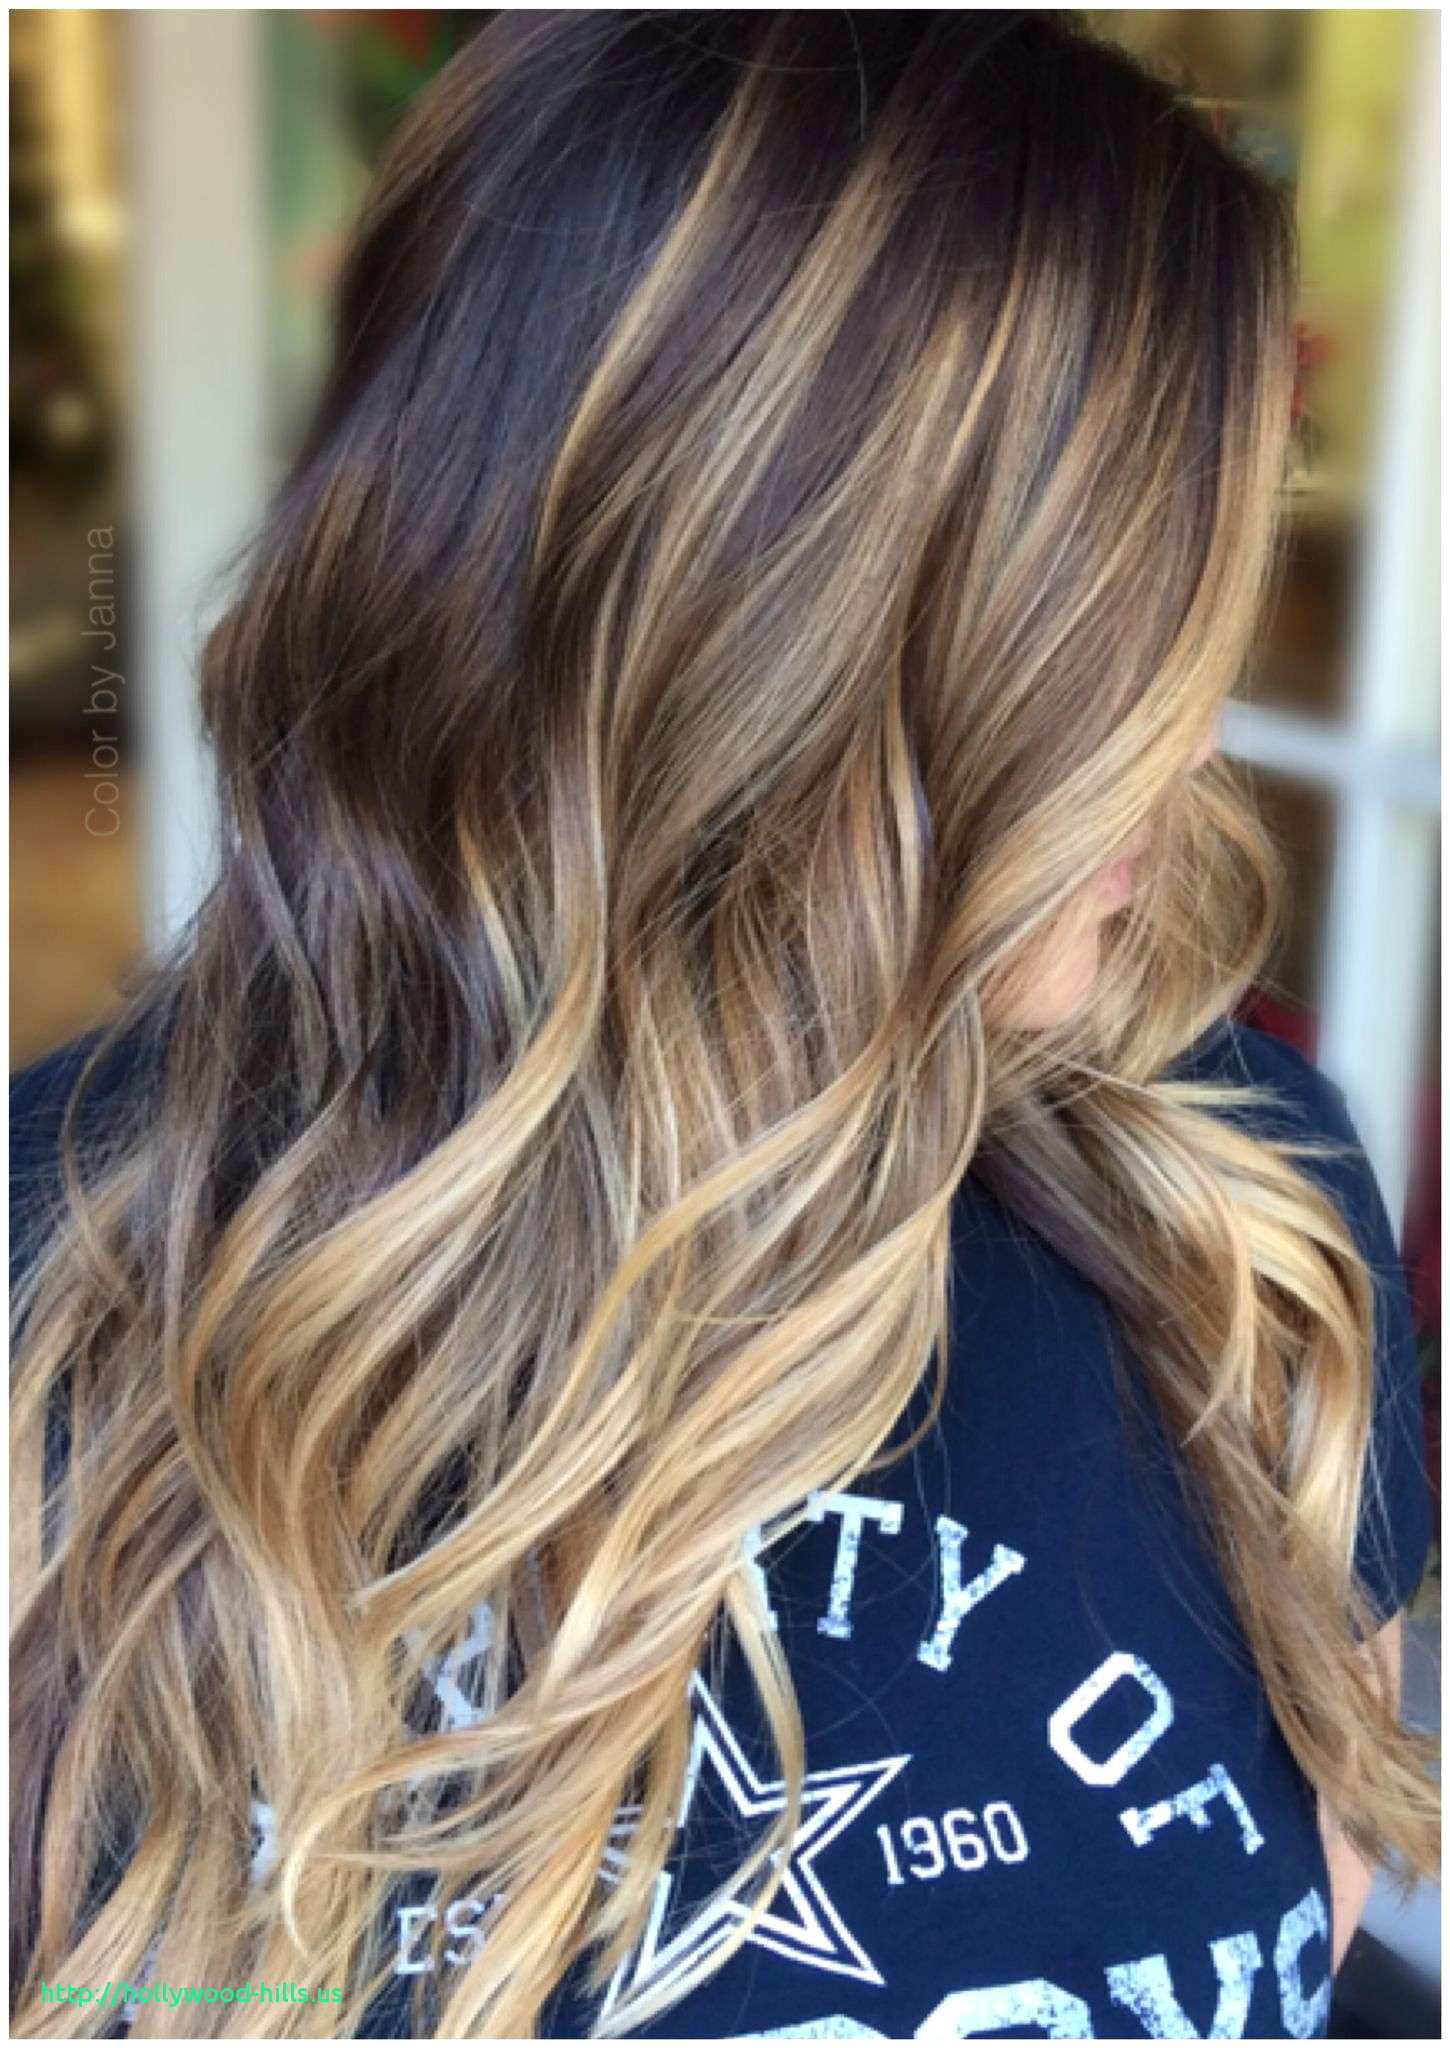 Hairstyles Unique I Hair Colors Short Hair Fresh Cute Hair Highlights for Brunettes Inspirational I Pinimg 1200x 0d